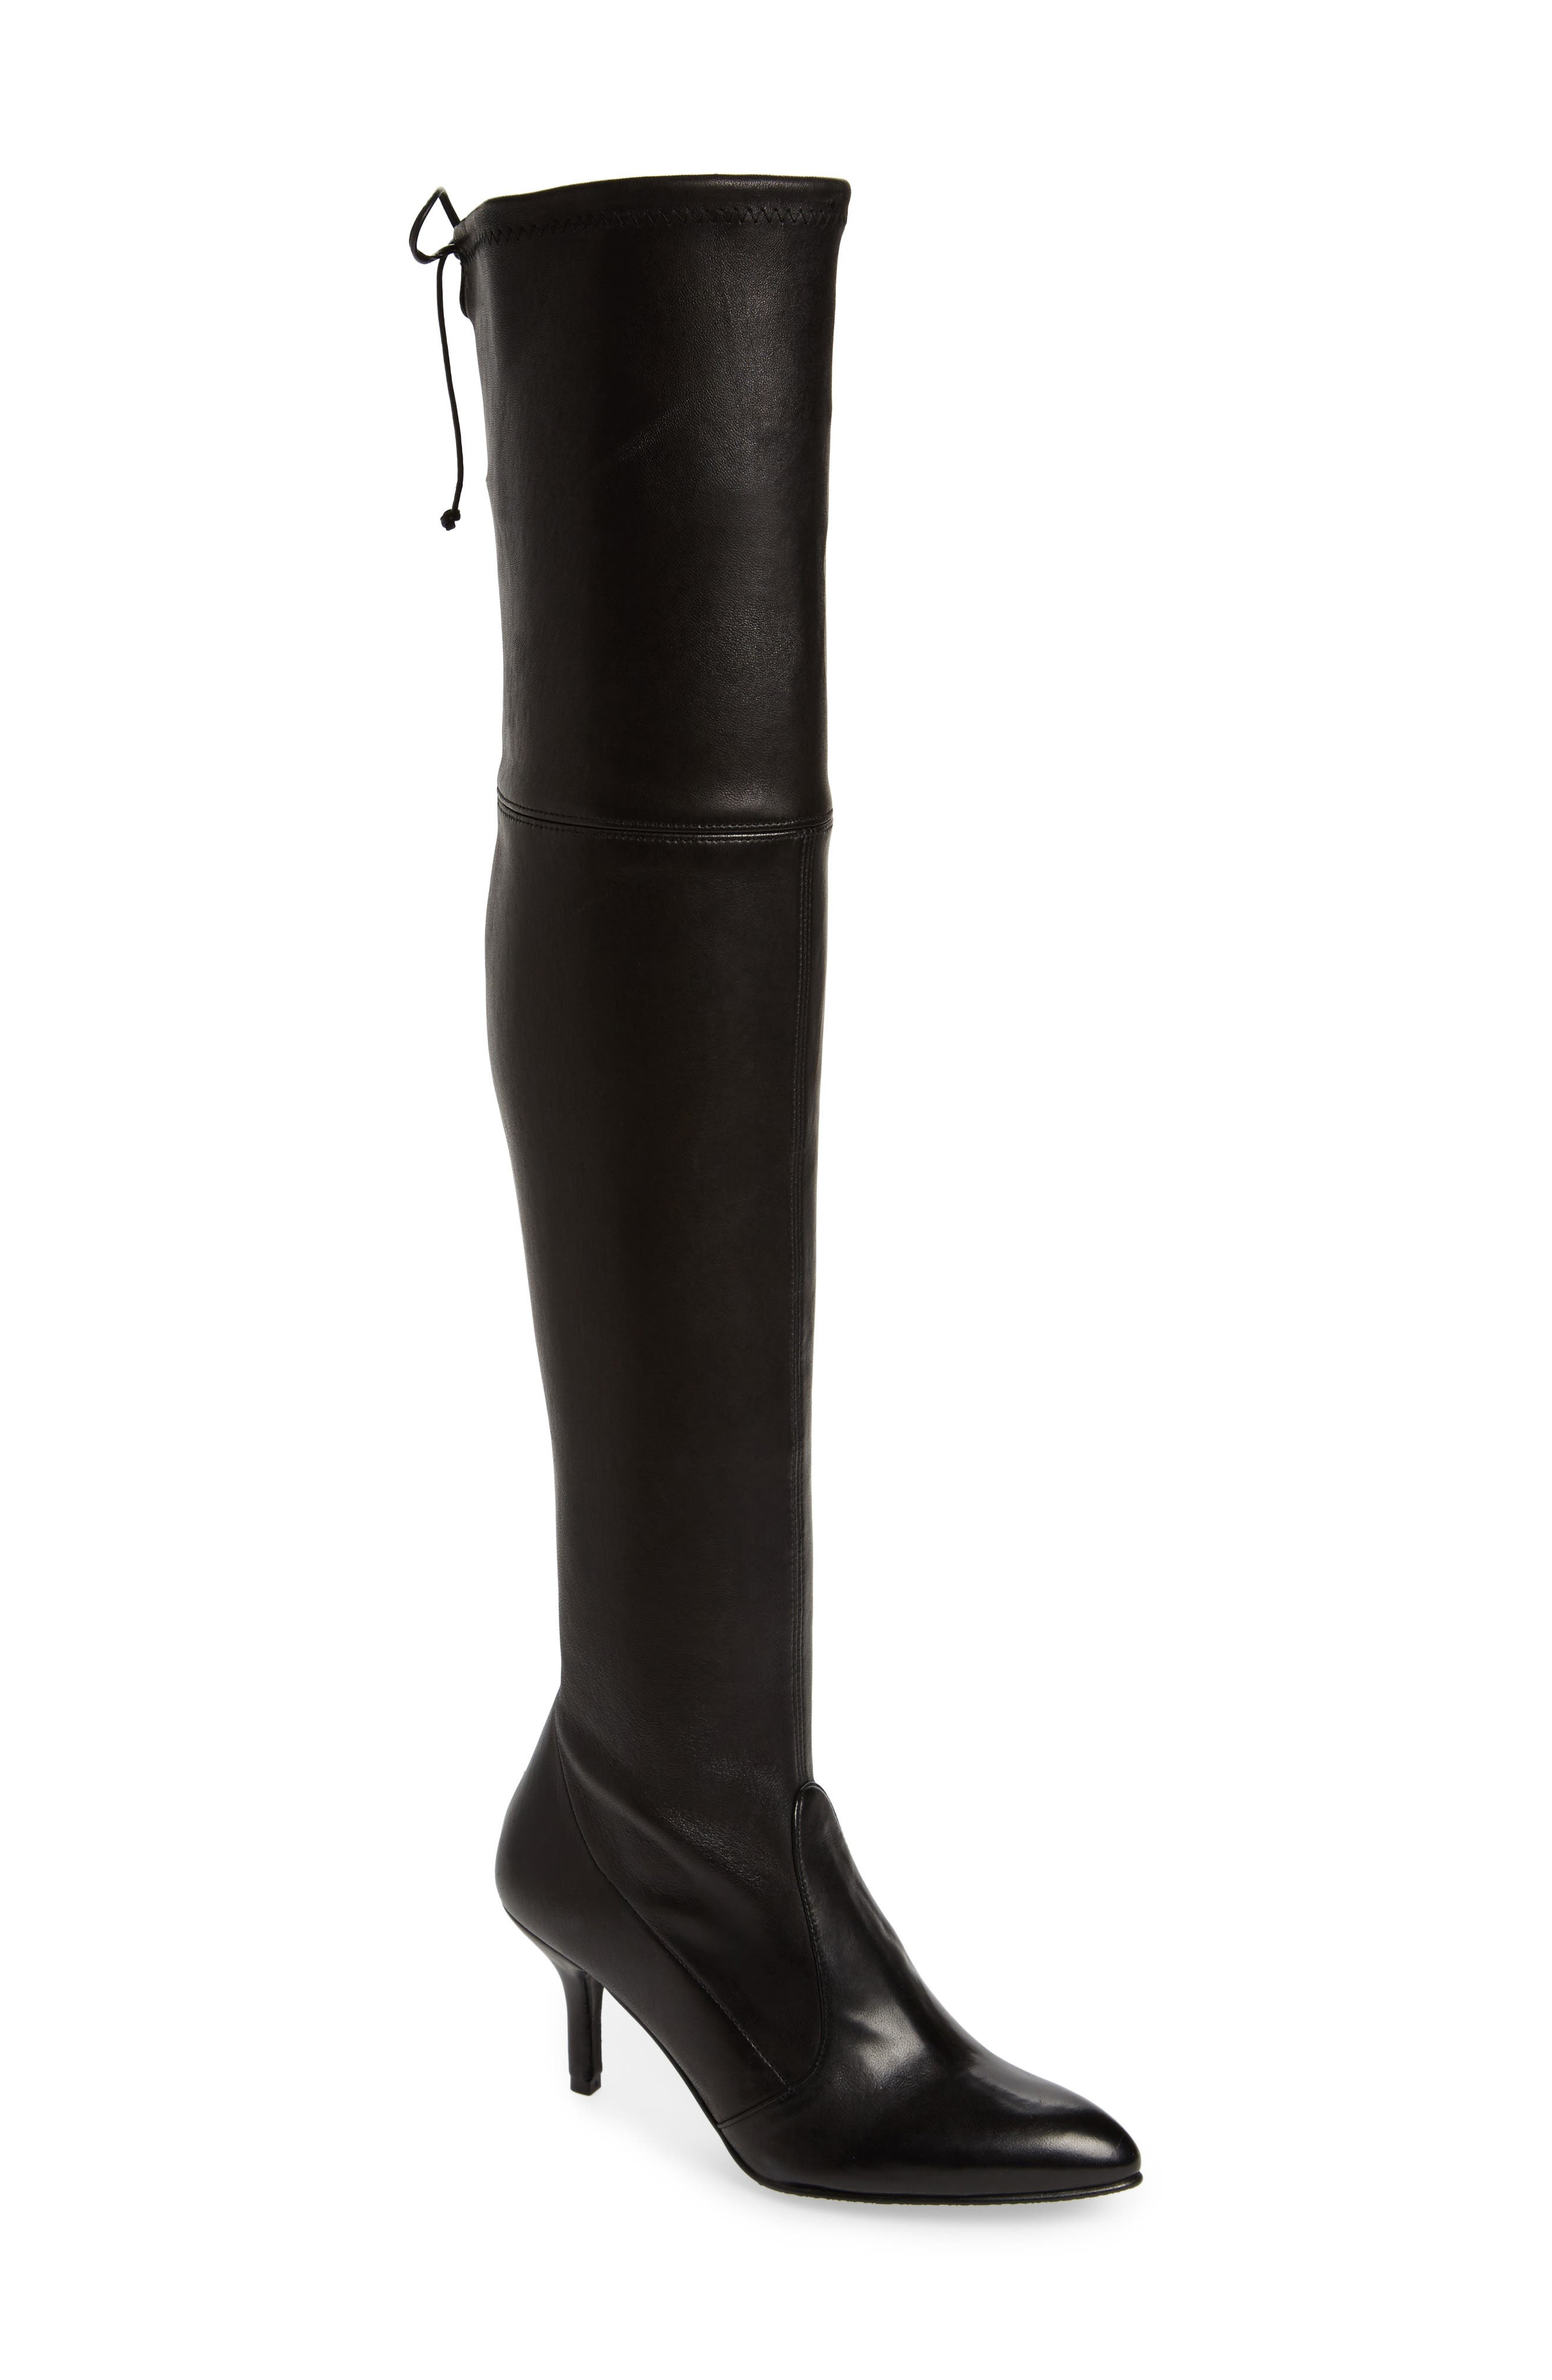 Tiemodel Over the Knee Stretch Boot,                             Main thumbnail 1, color,                             002